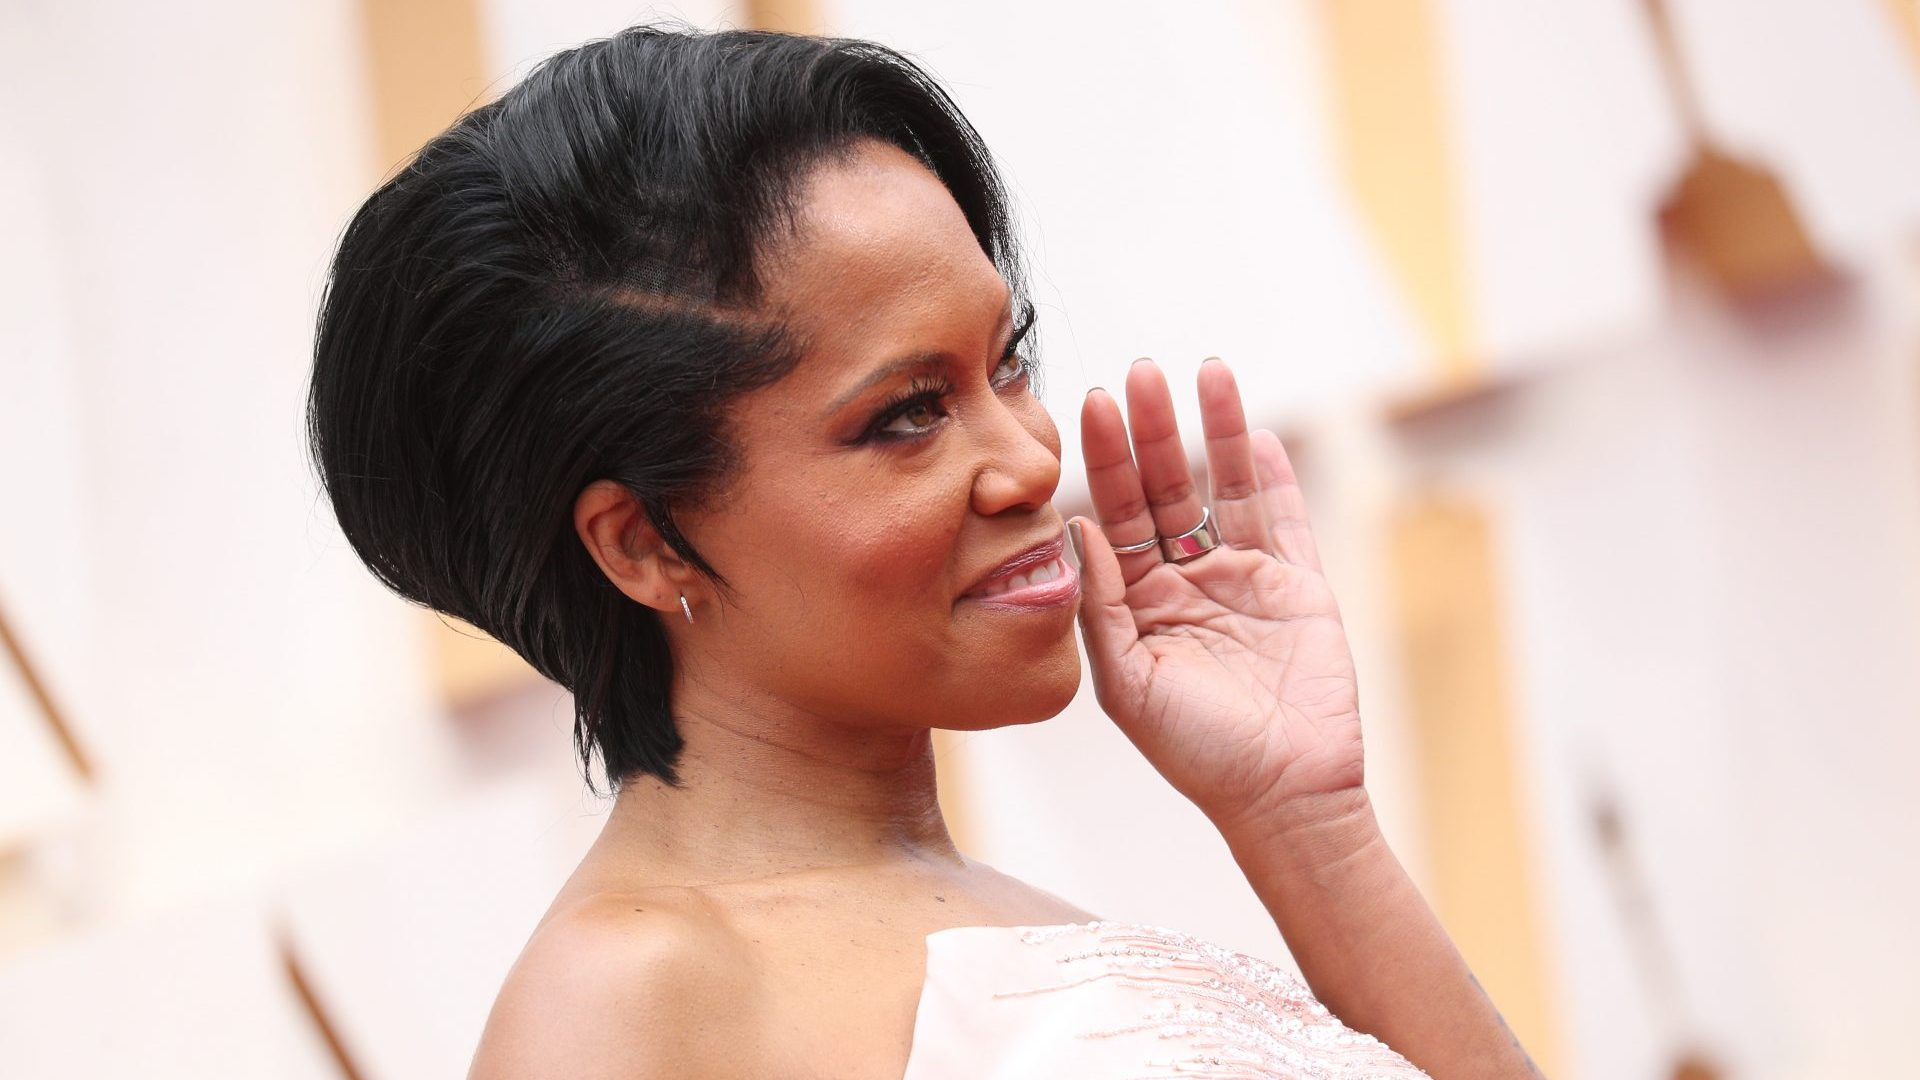 How Regina King Warned Her Son About Racist Interactions With Police